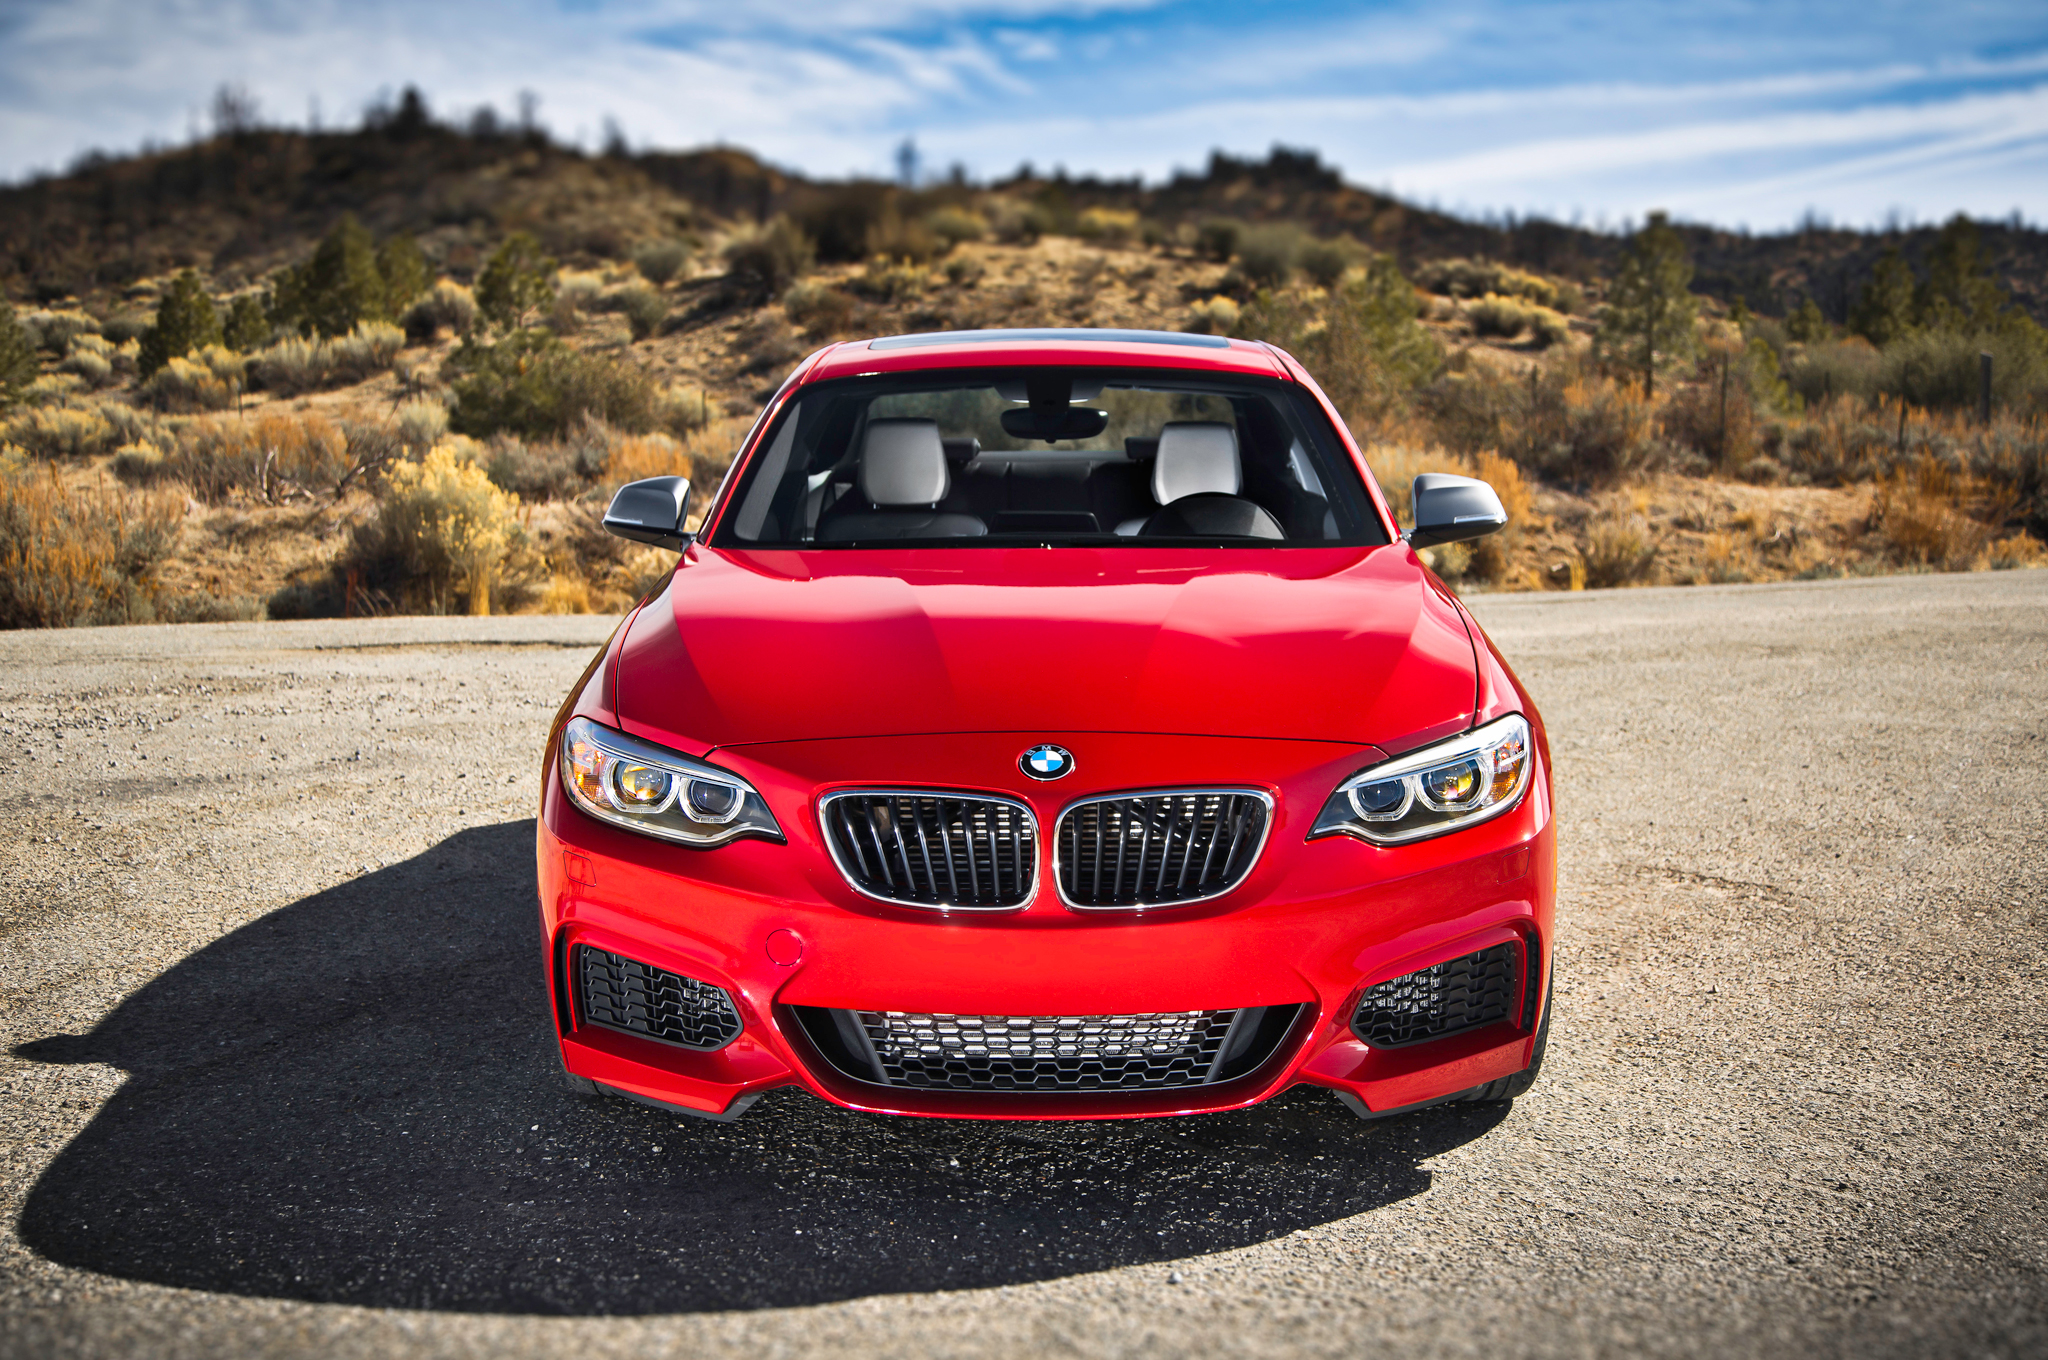 2014 Bmw M235i Front View (Photo 6 of 8)